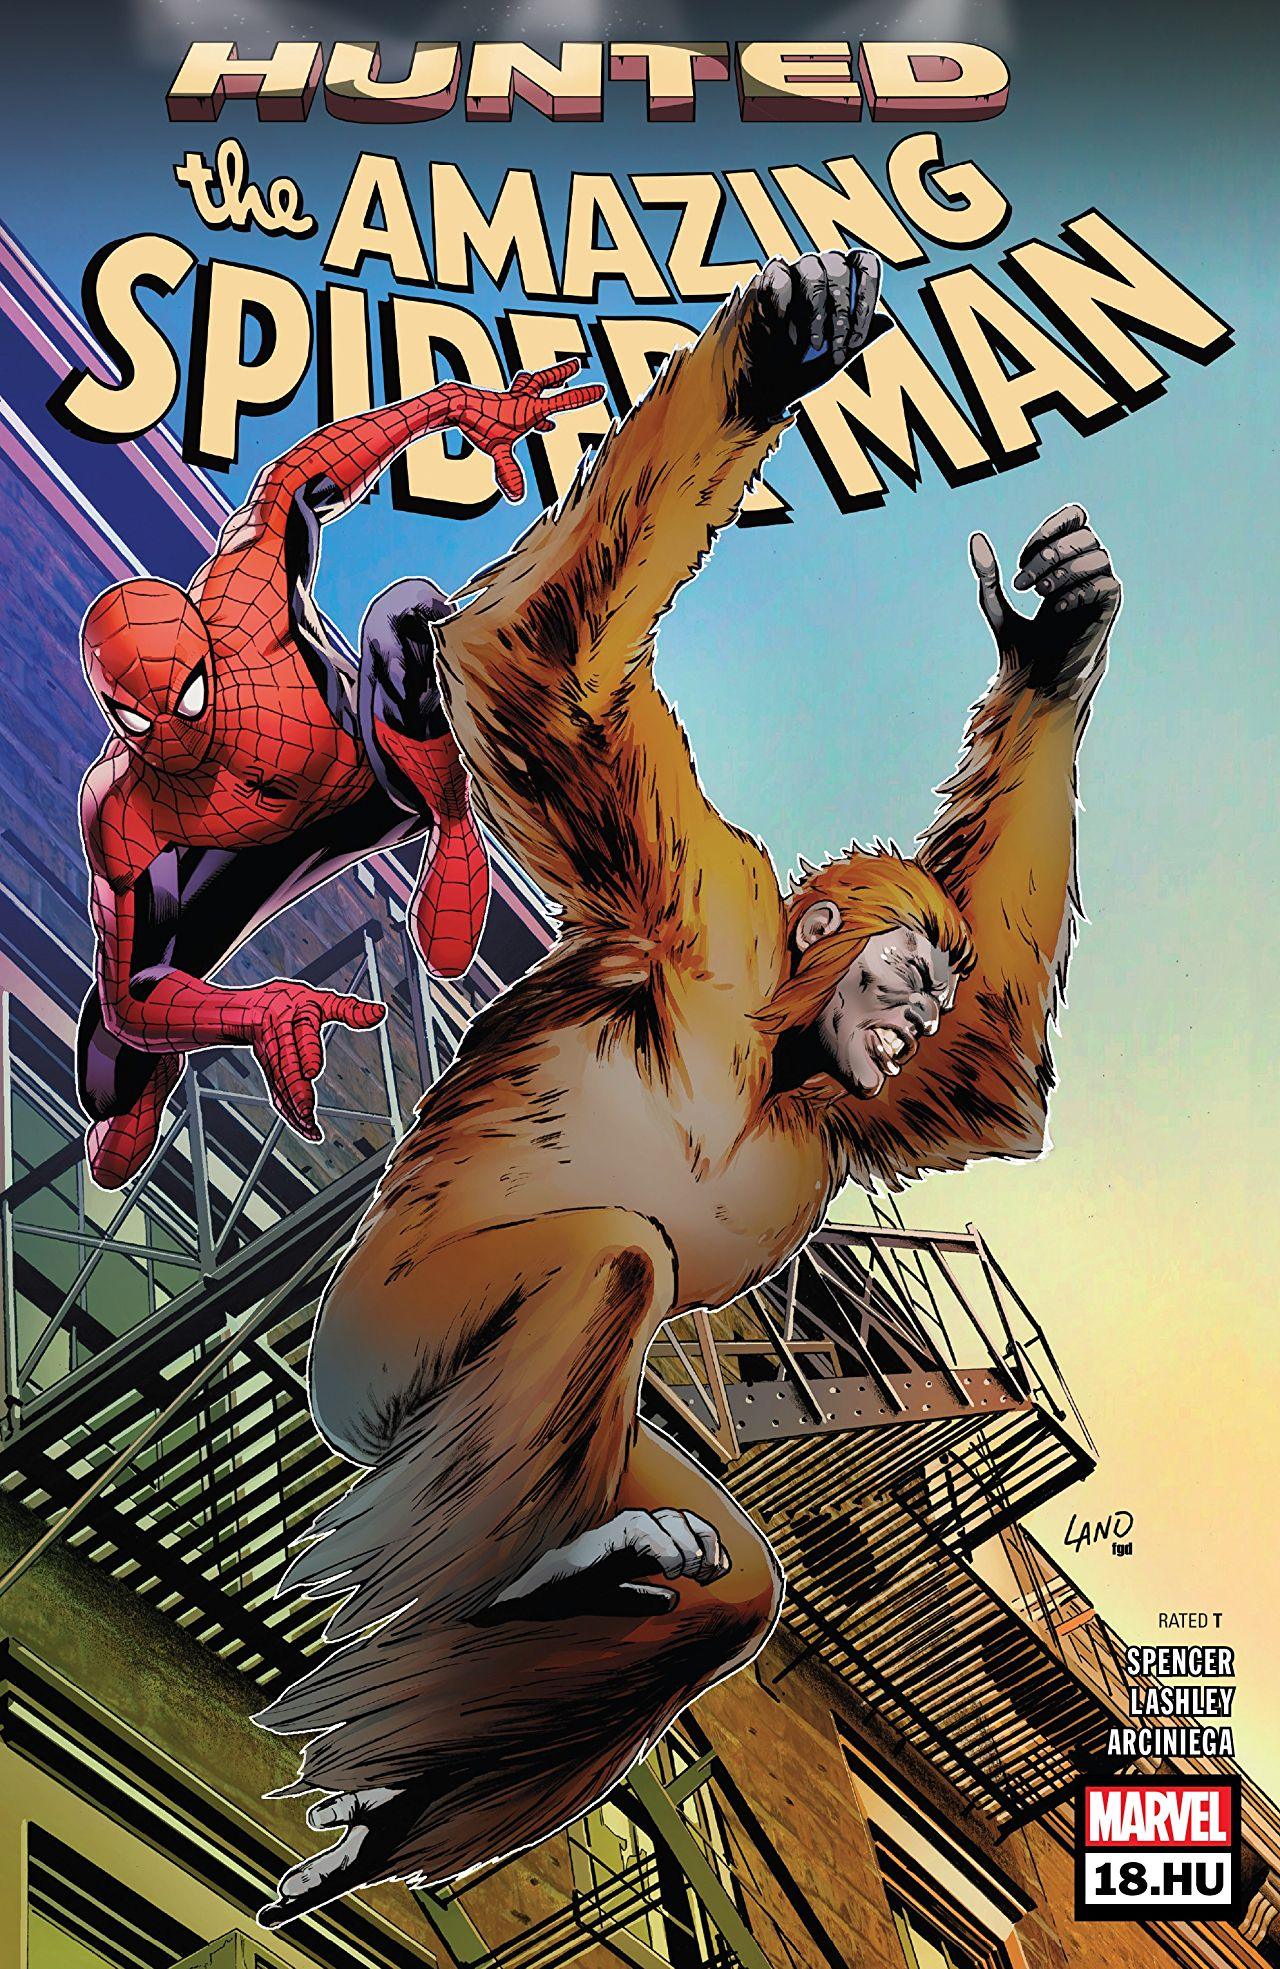 The Amazing Spider-Man 18.1 - Issue #18.HU